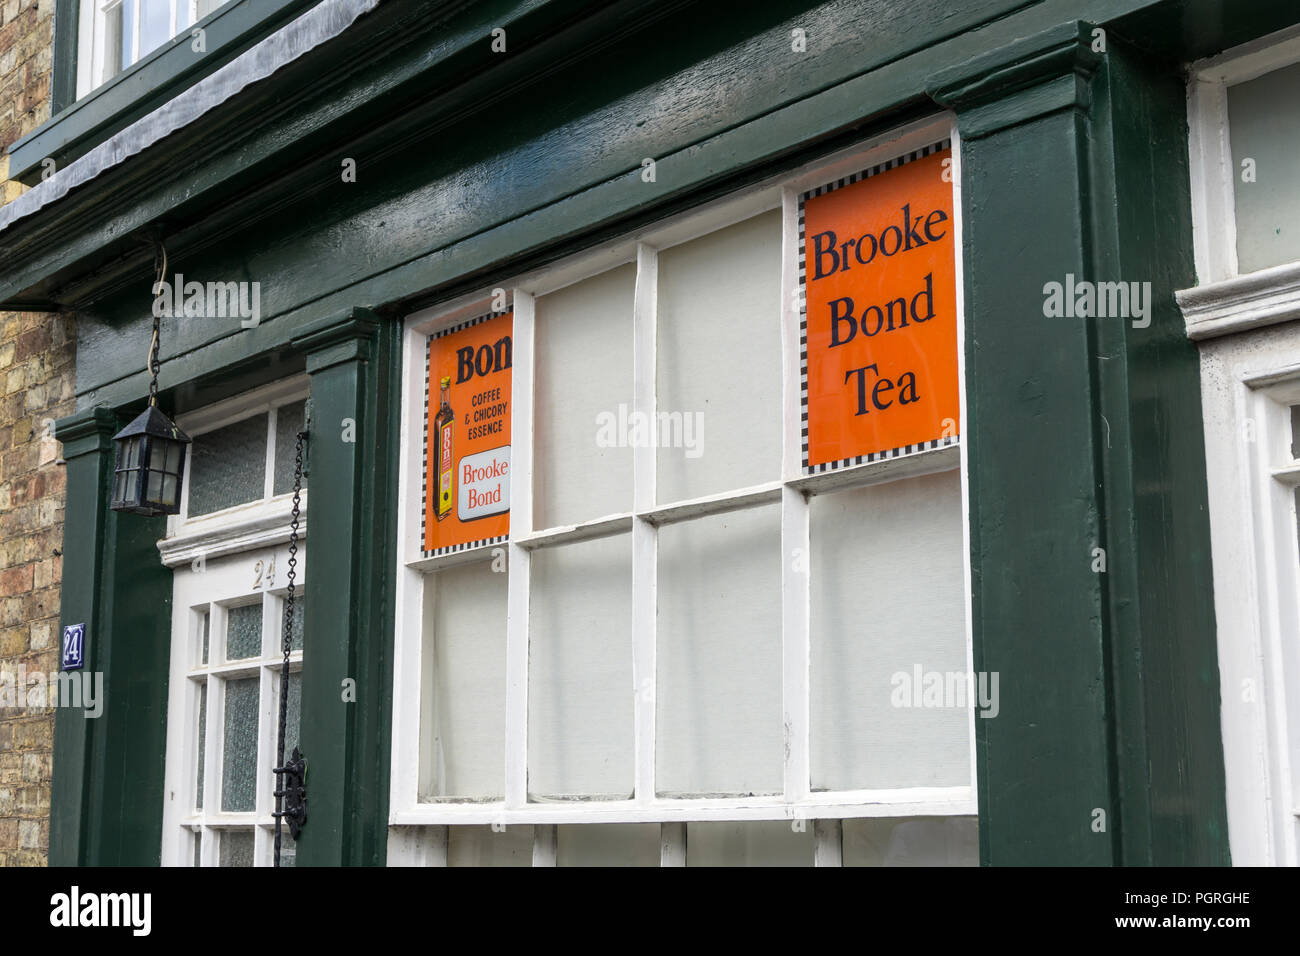 Frontage of an old shop, now converted to residential use, displaying vintage Brooke Bond Tea adverts; Kimbolton, UK - Stock Image